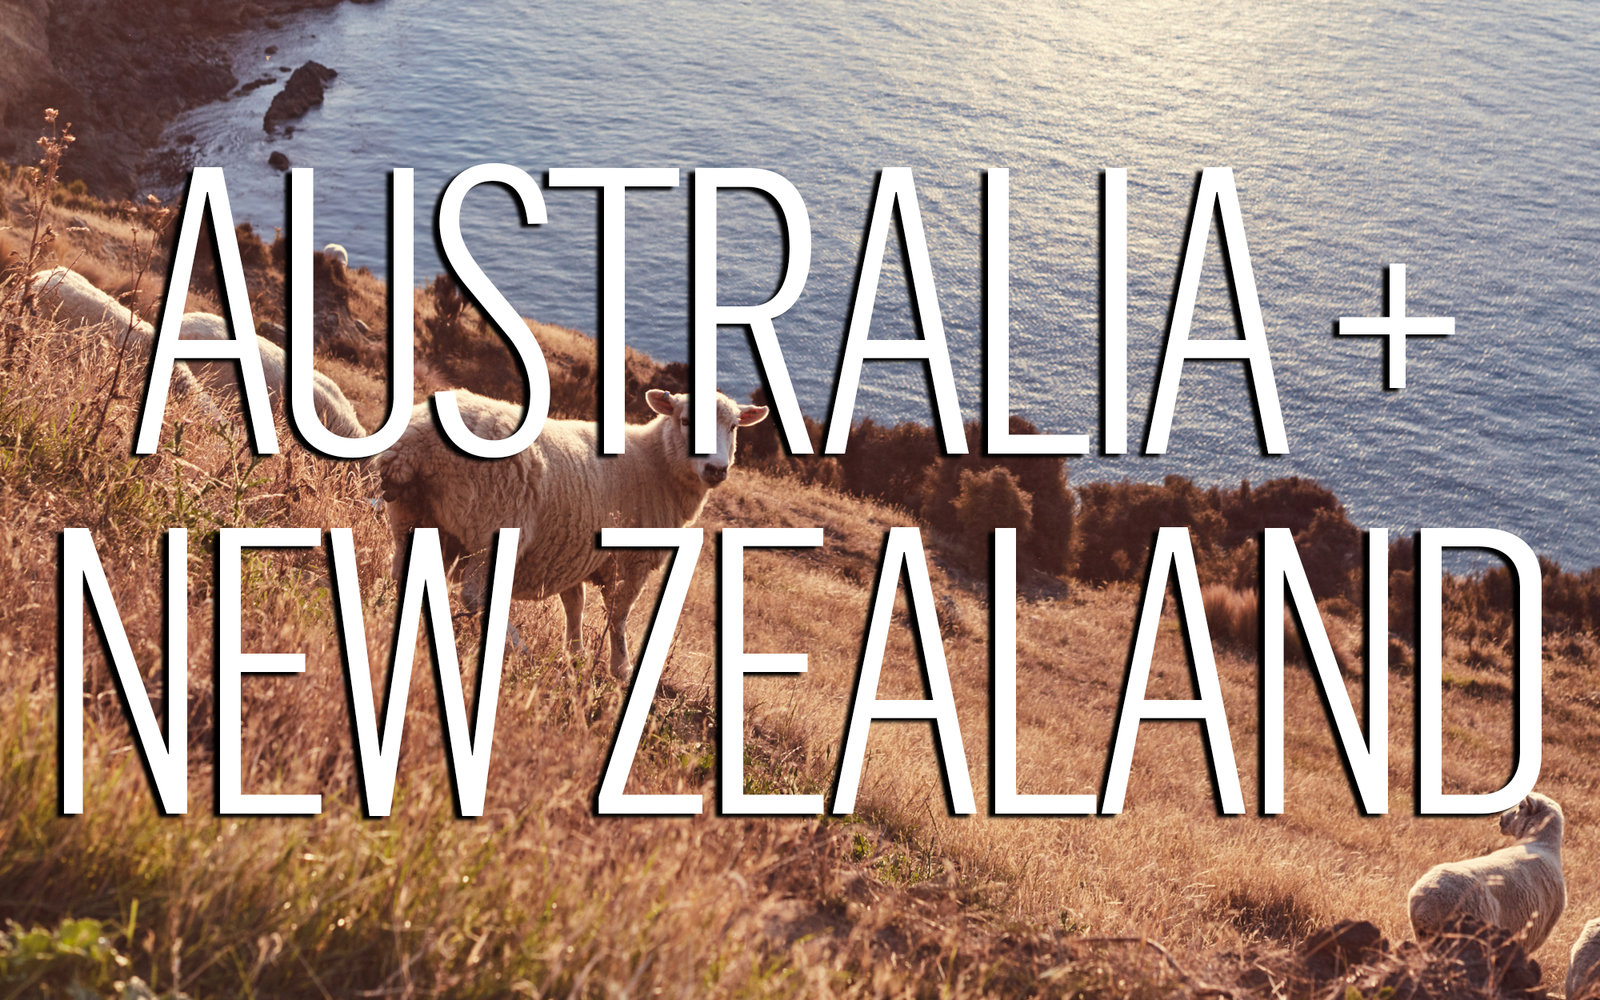 Australia & New Zealand Honeymoon Destinations